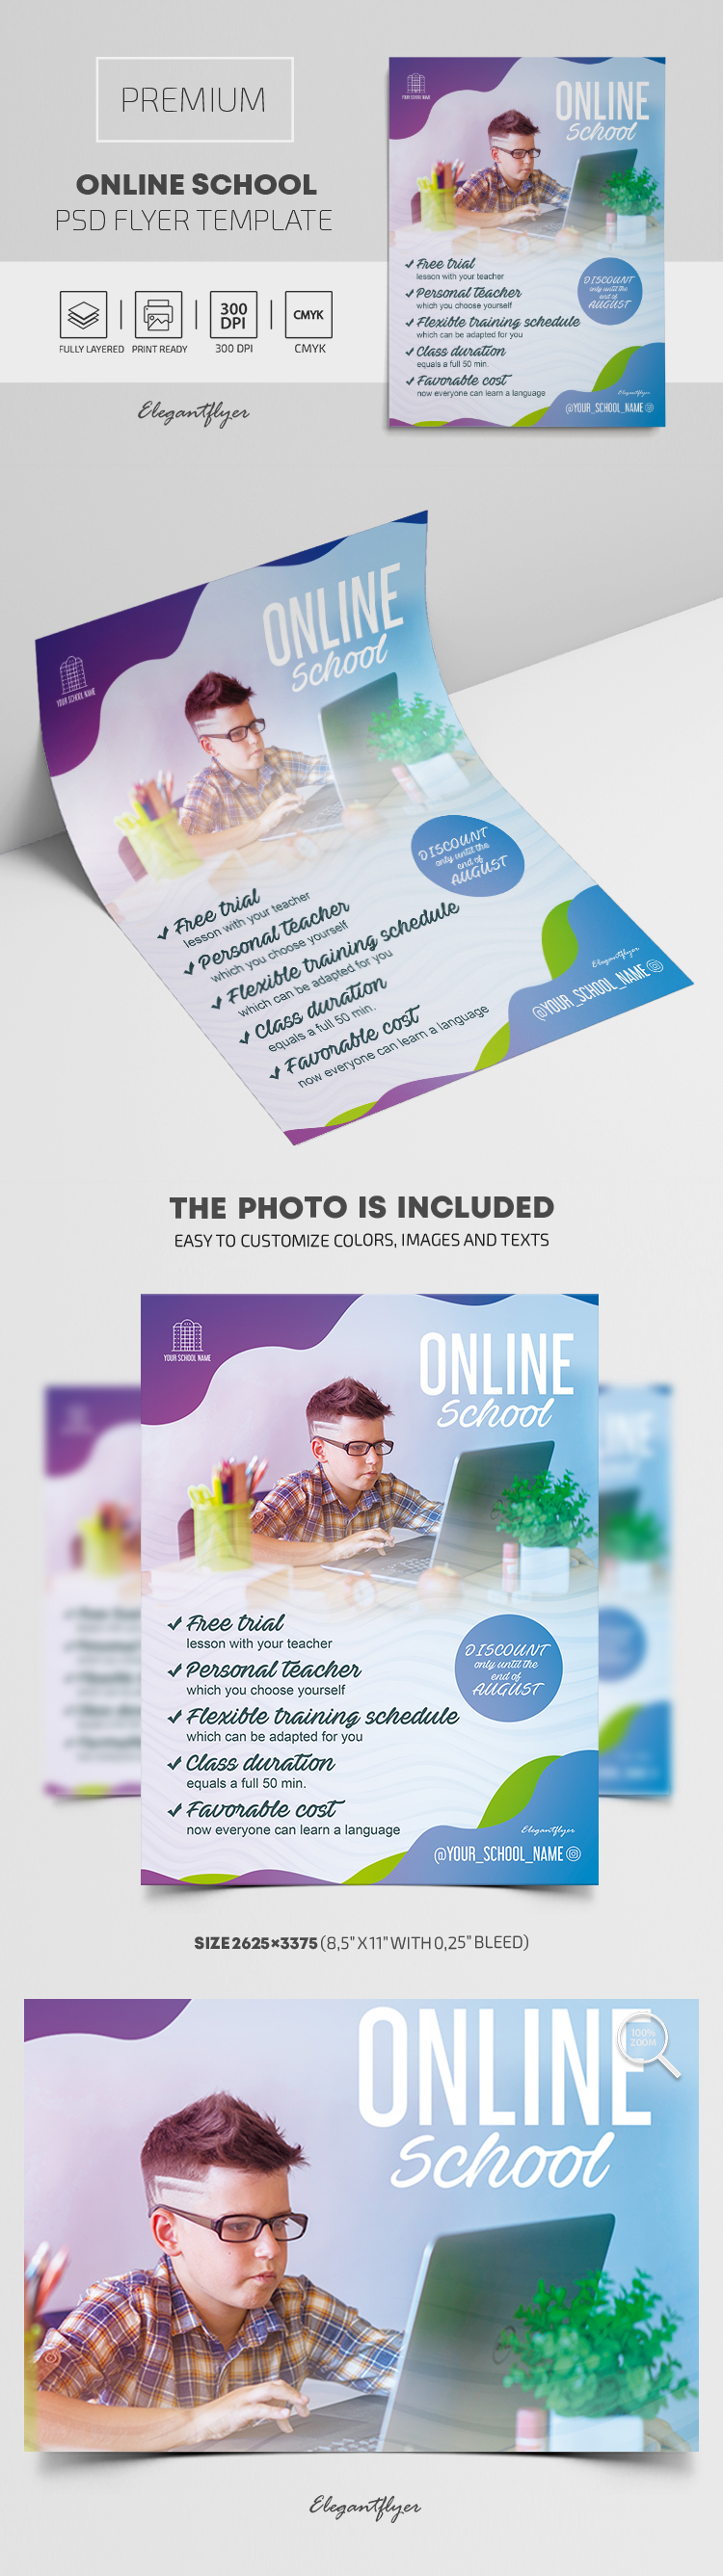 Online School – Premium PSD Flyer Template